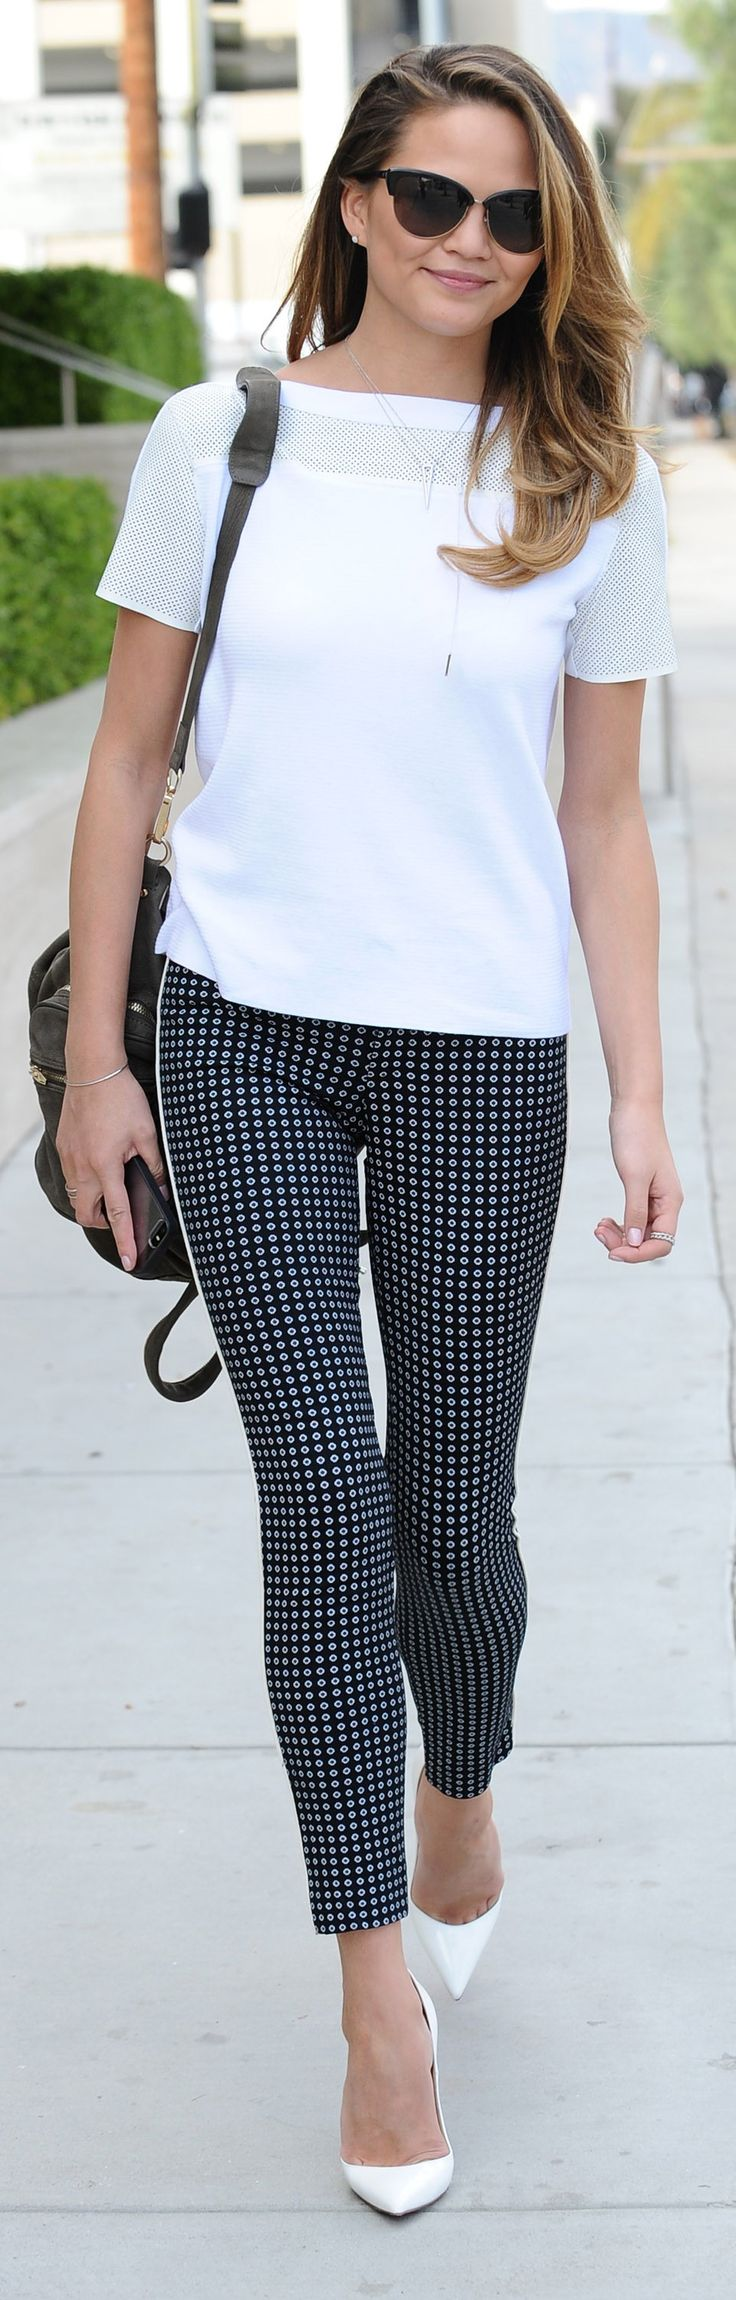 A printed pant is such a fun twist on a classic look. (Chrissy Teigen)